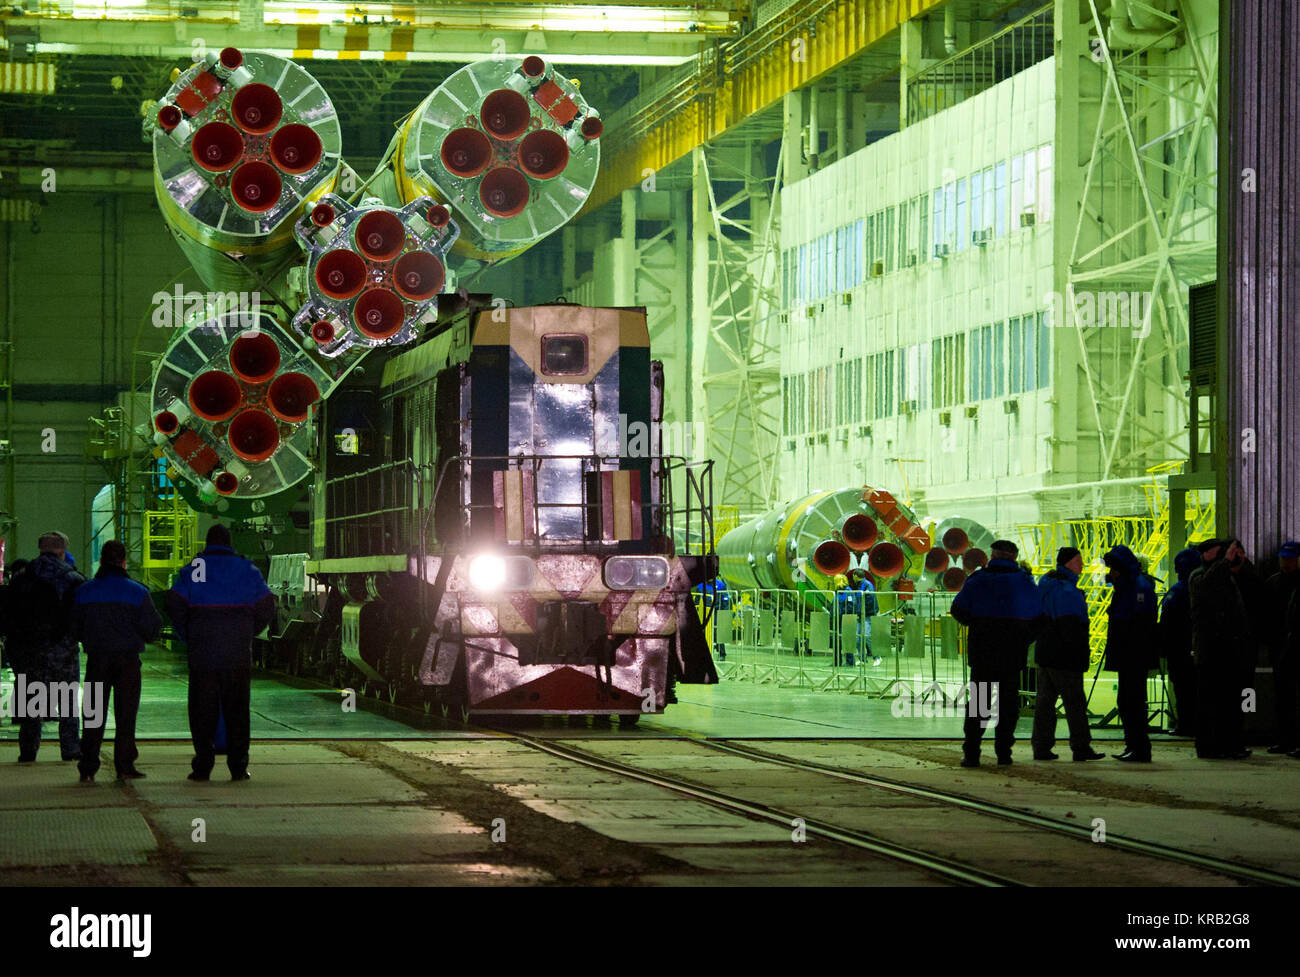 The Soyuz TMA-22 spacecraft is rolled out by train on its way to the launch pad at the Baikonur Cosmodrome, Kazakhstan, - Stock Image